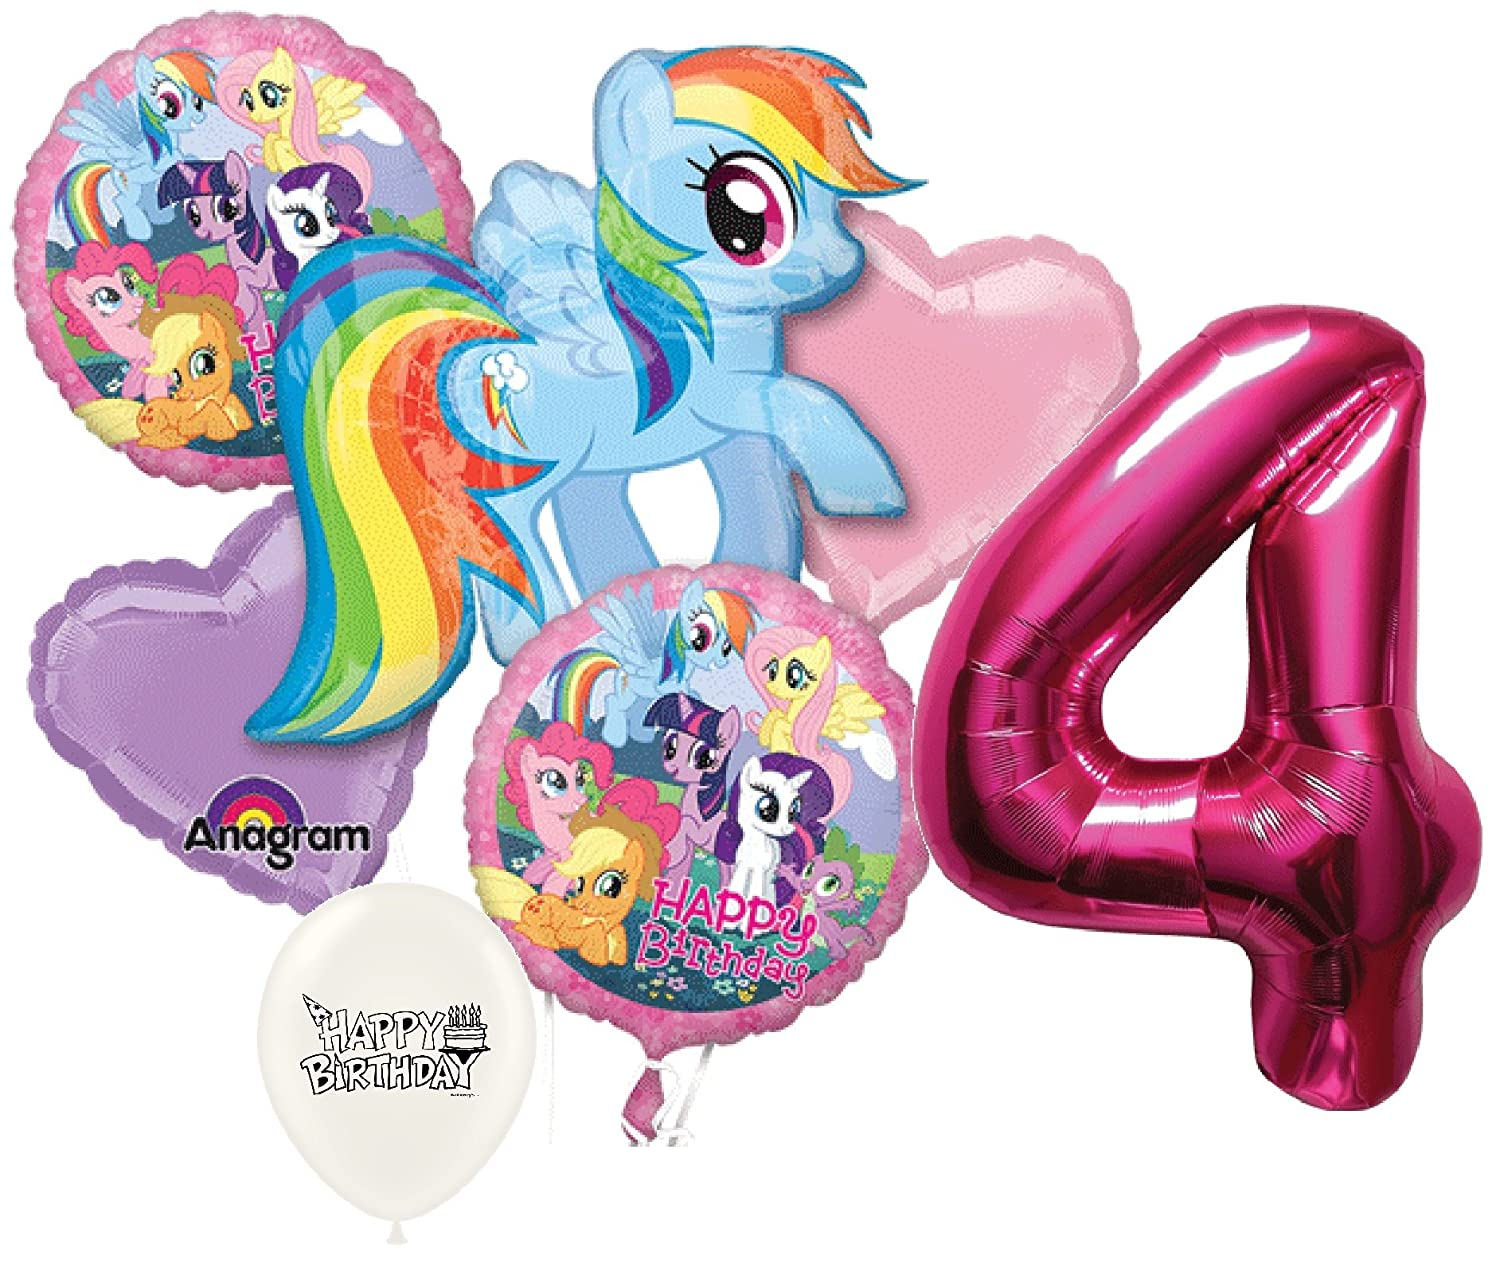 Amazon 4th Birthday Pink Number My Little Pony Party Decorations Balloon Bouquet Bundle Toys Games